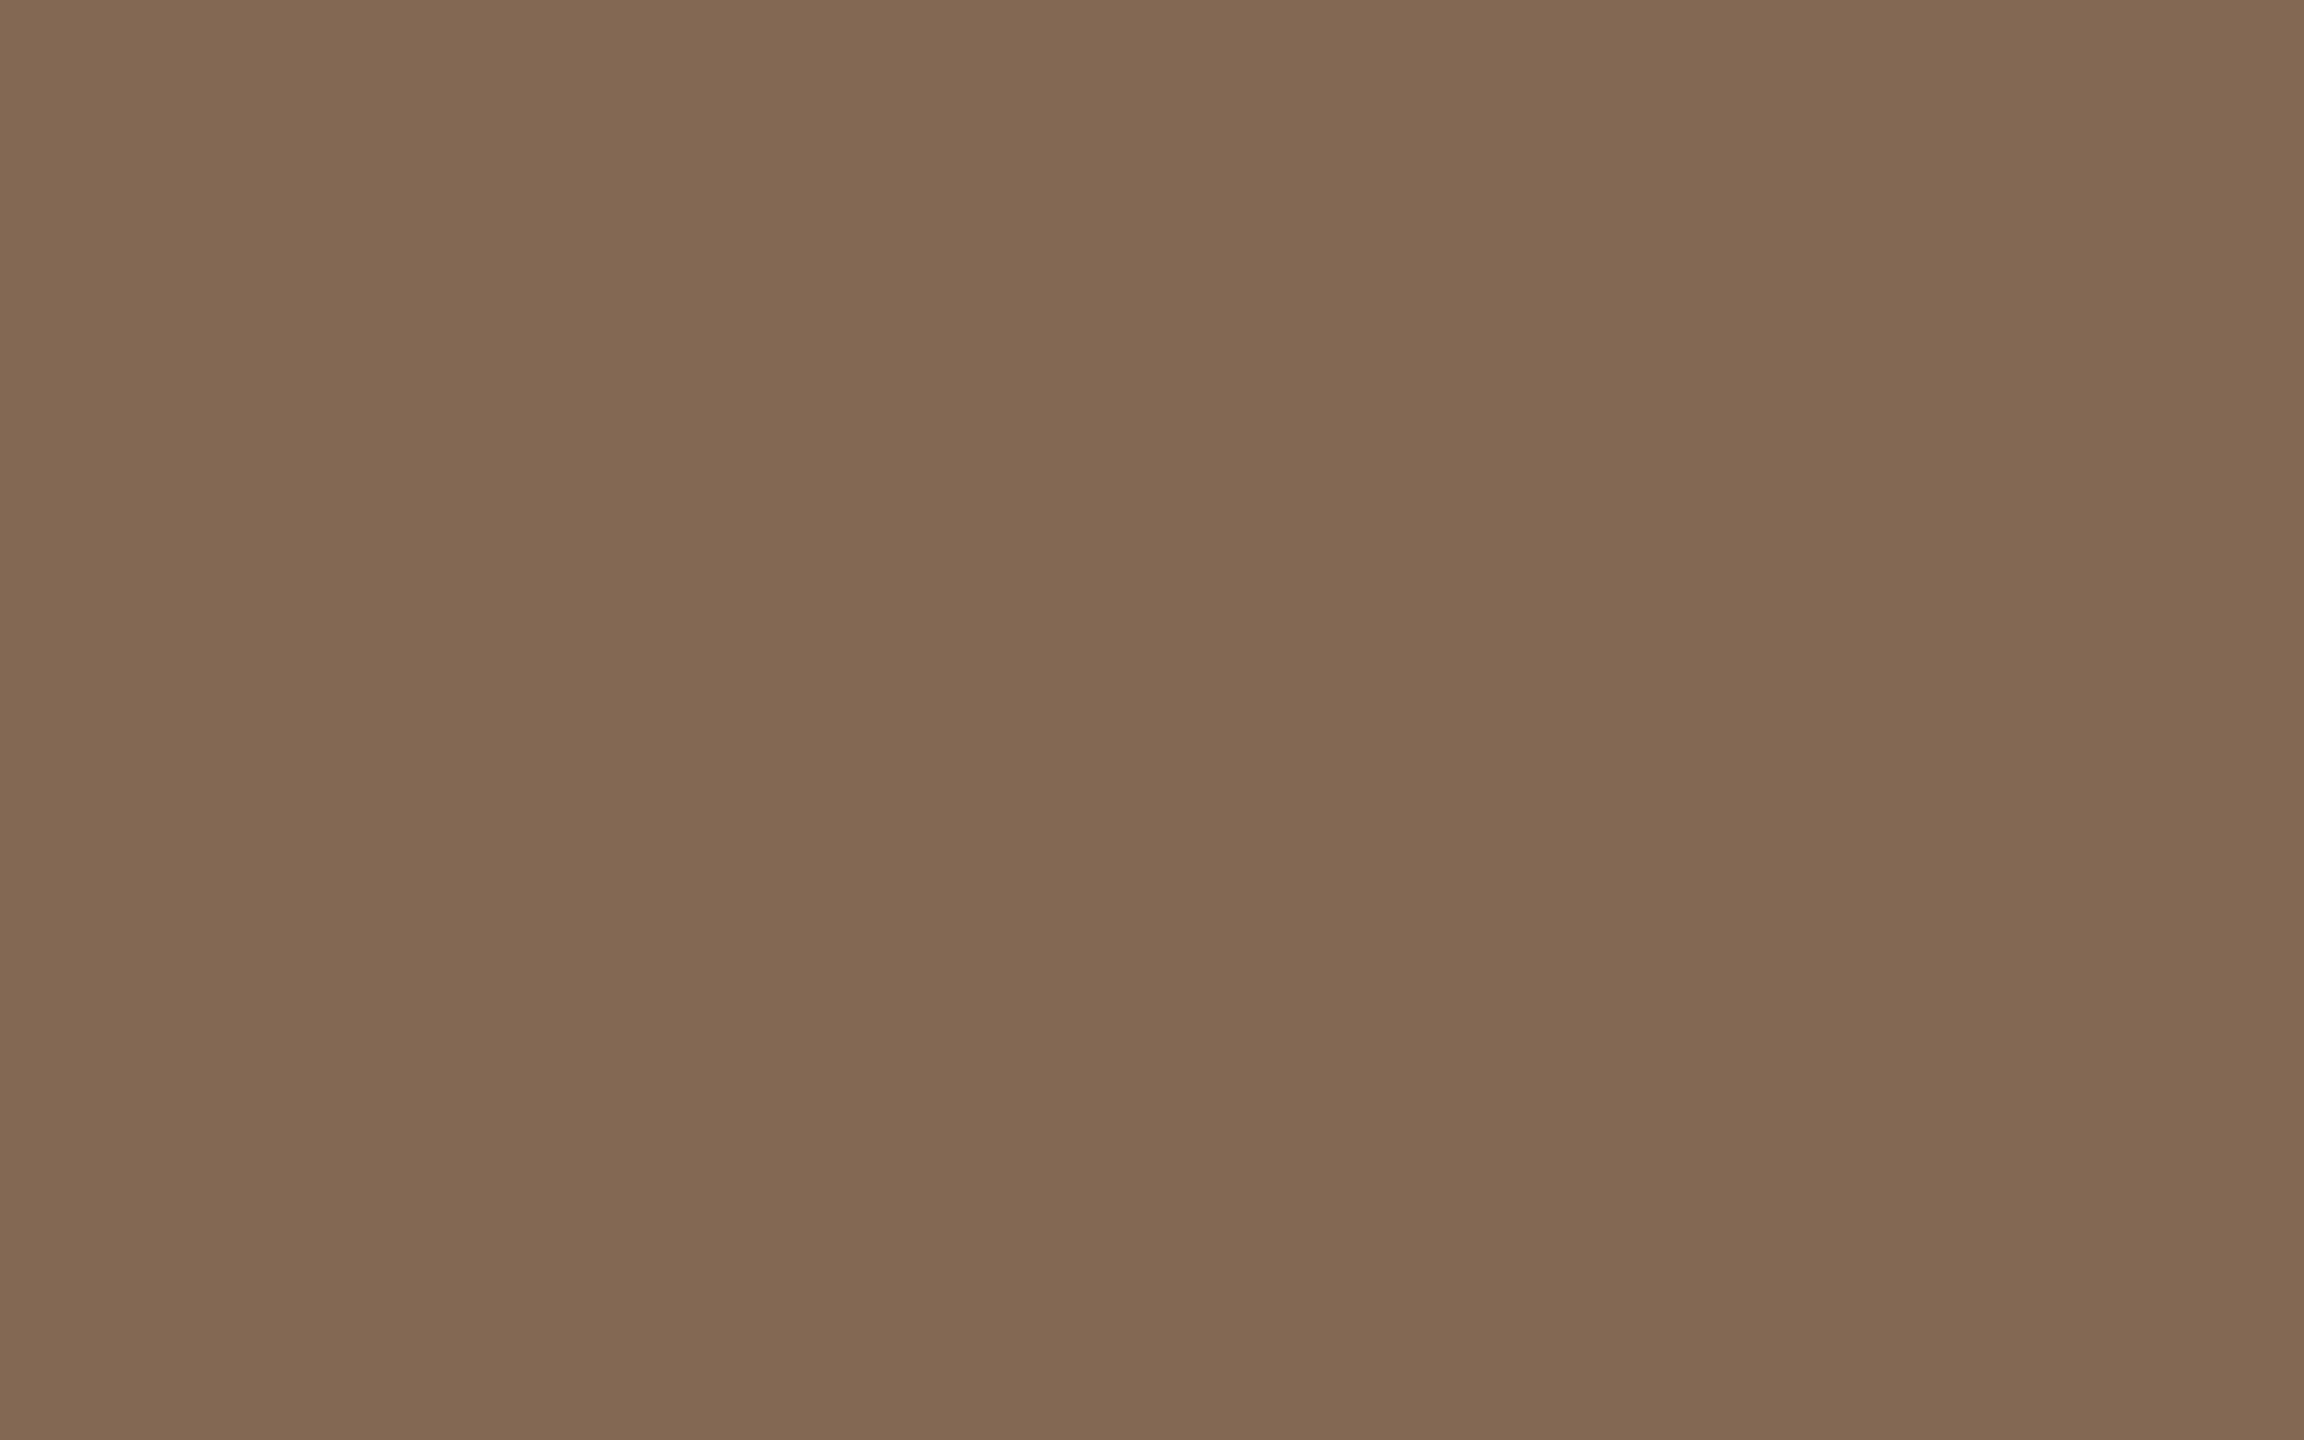 2304x1440 Pastel Brown Solid Color Background